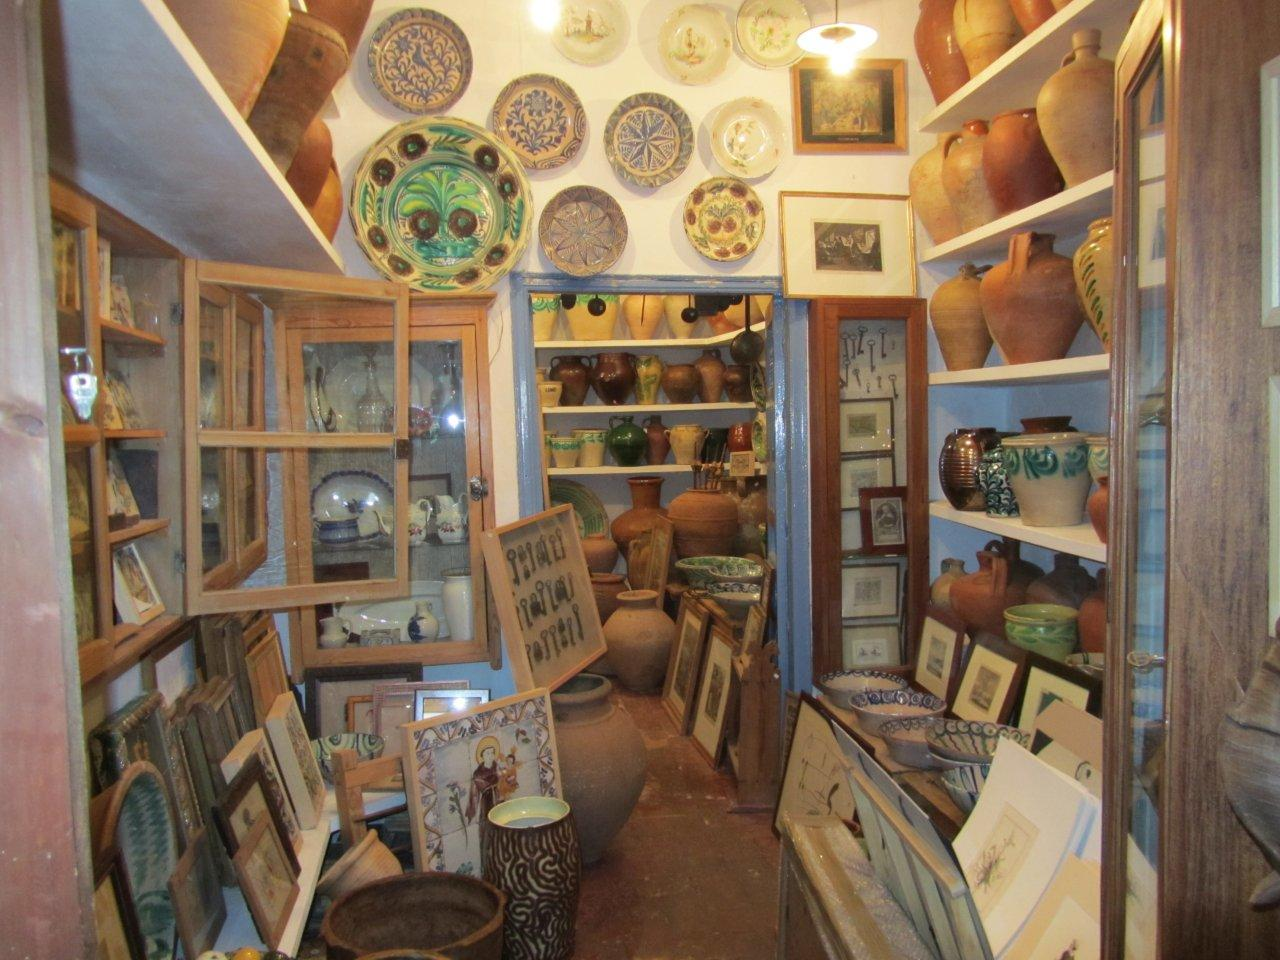 Populart shop of ceramics and tiles in Seville